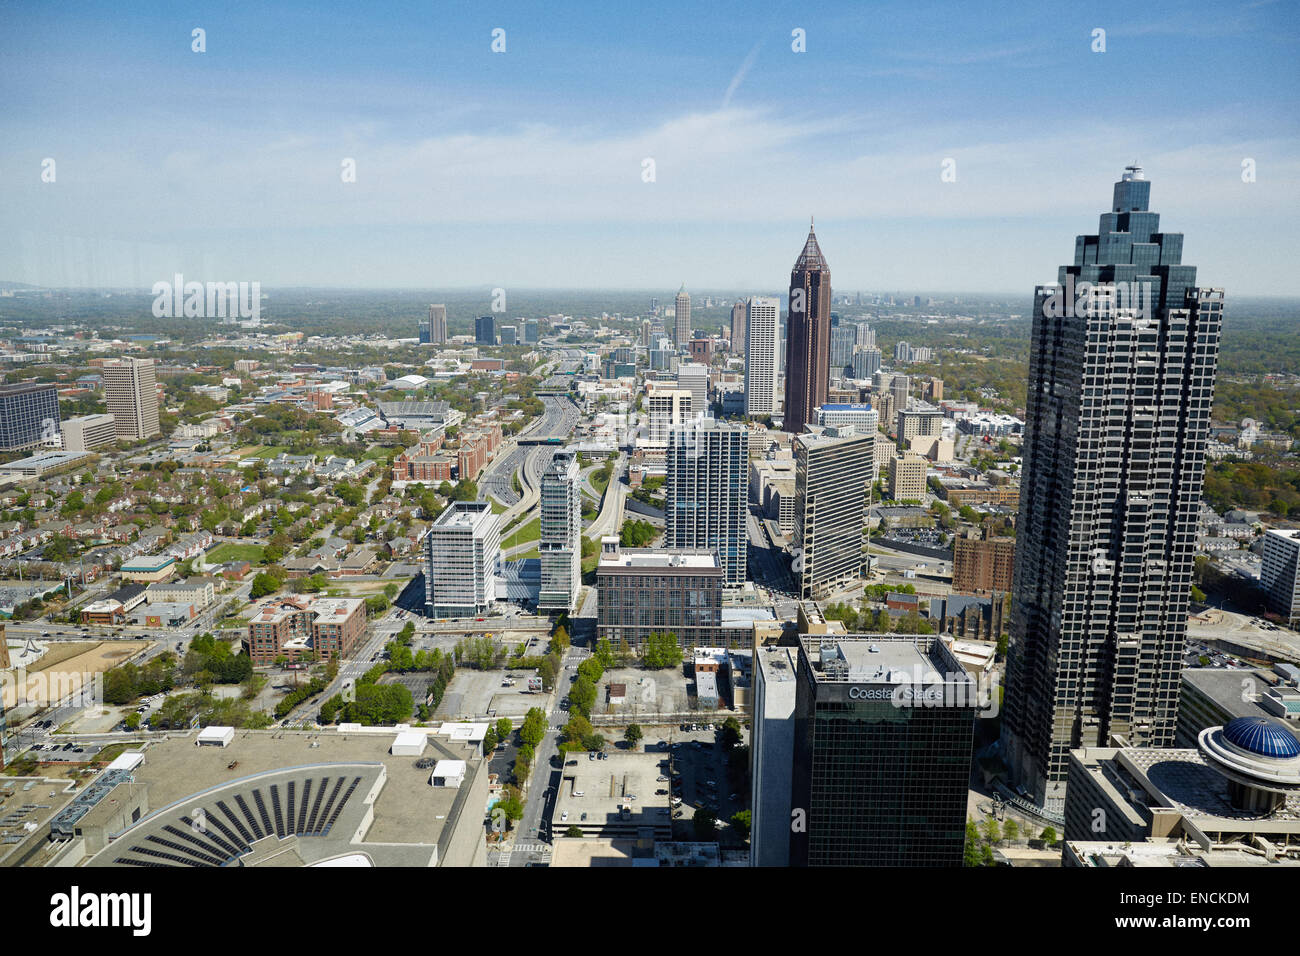 Skyline Downtown Atlanta looking from Midtown Atlanta in Georga USA  Bank of America Plaza is a skyscraper located - Stock Image